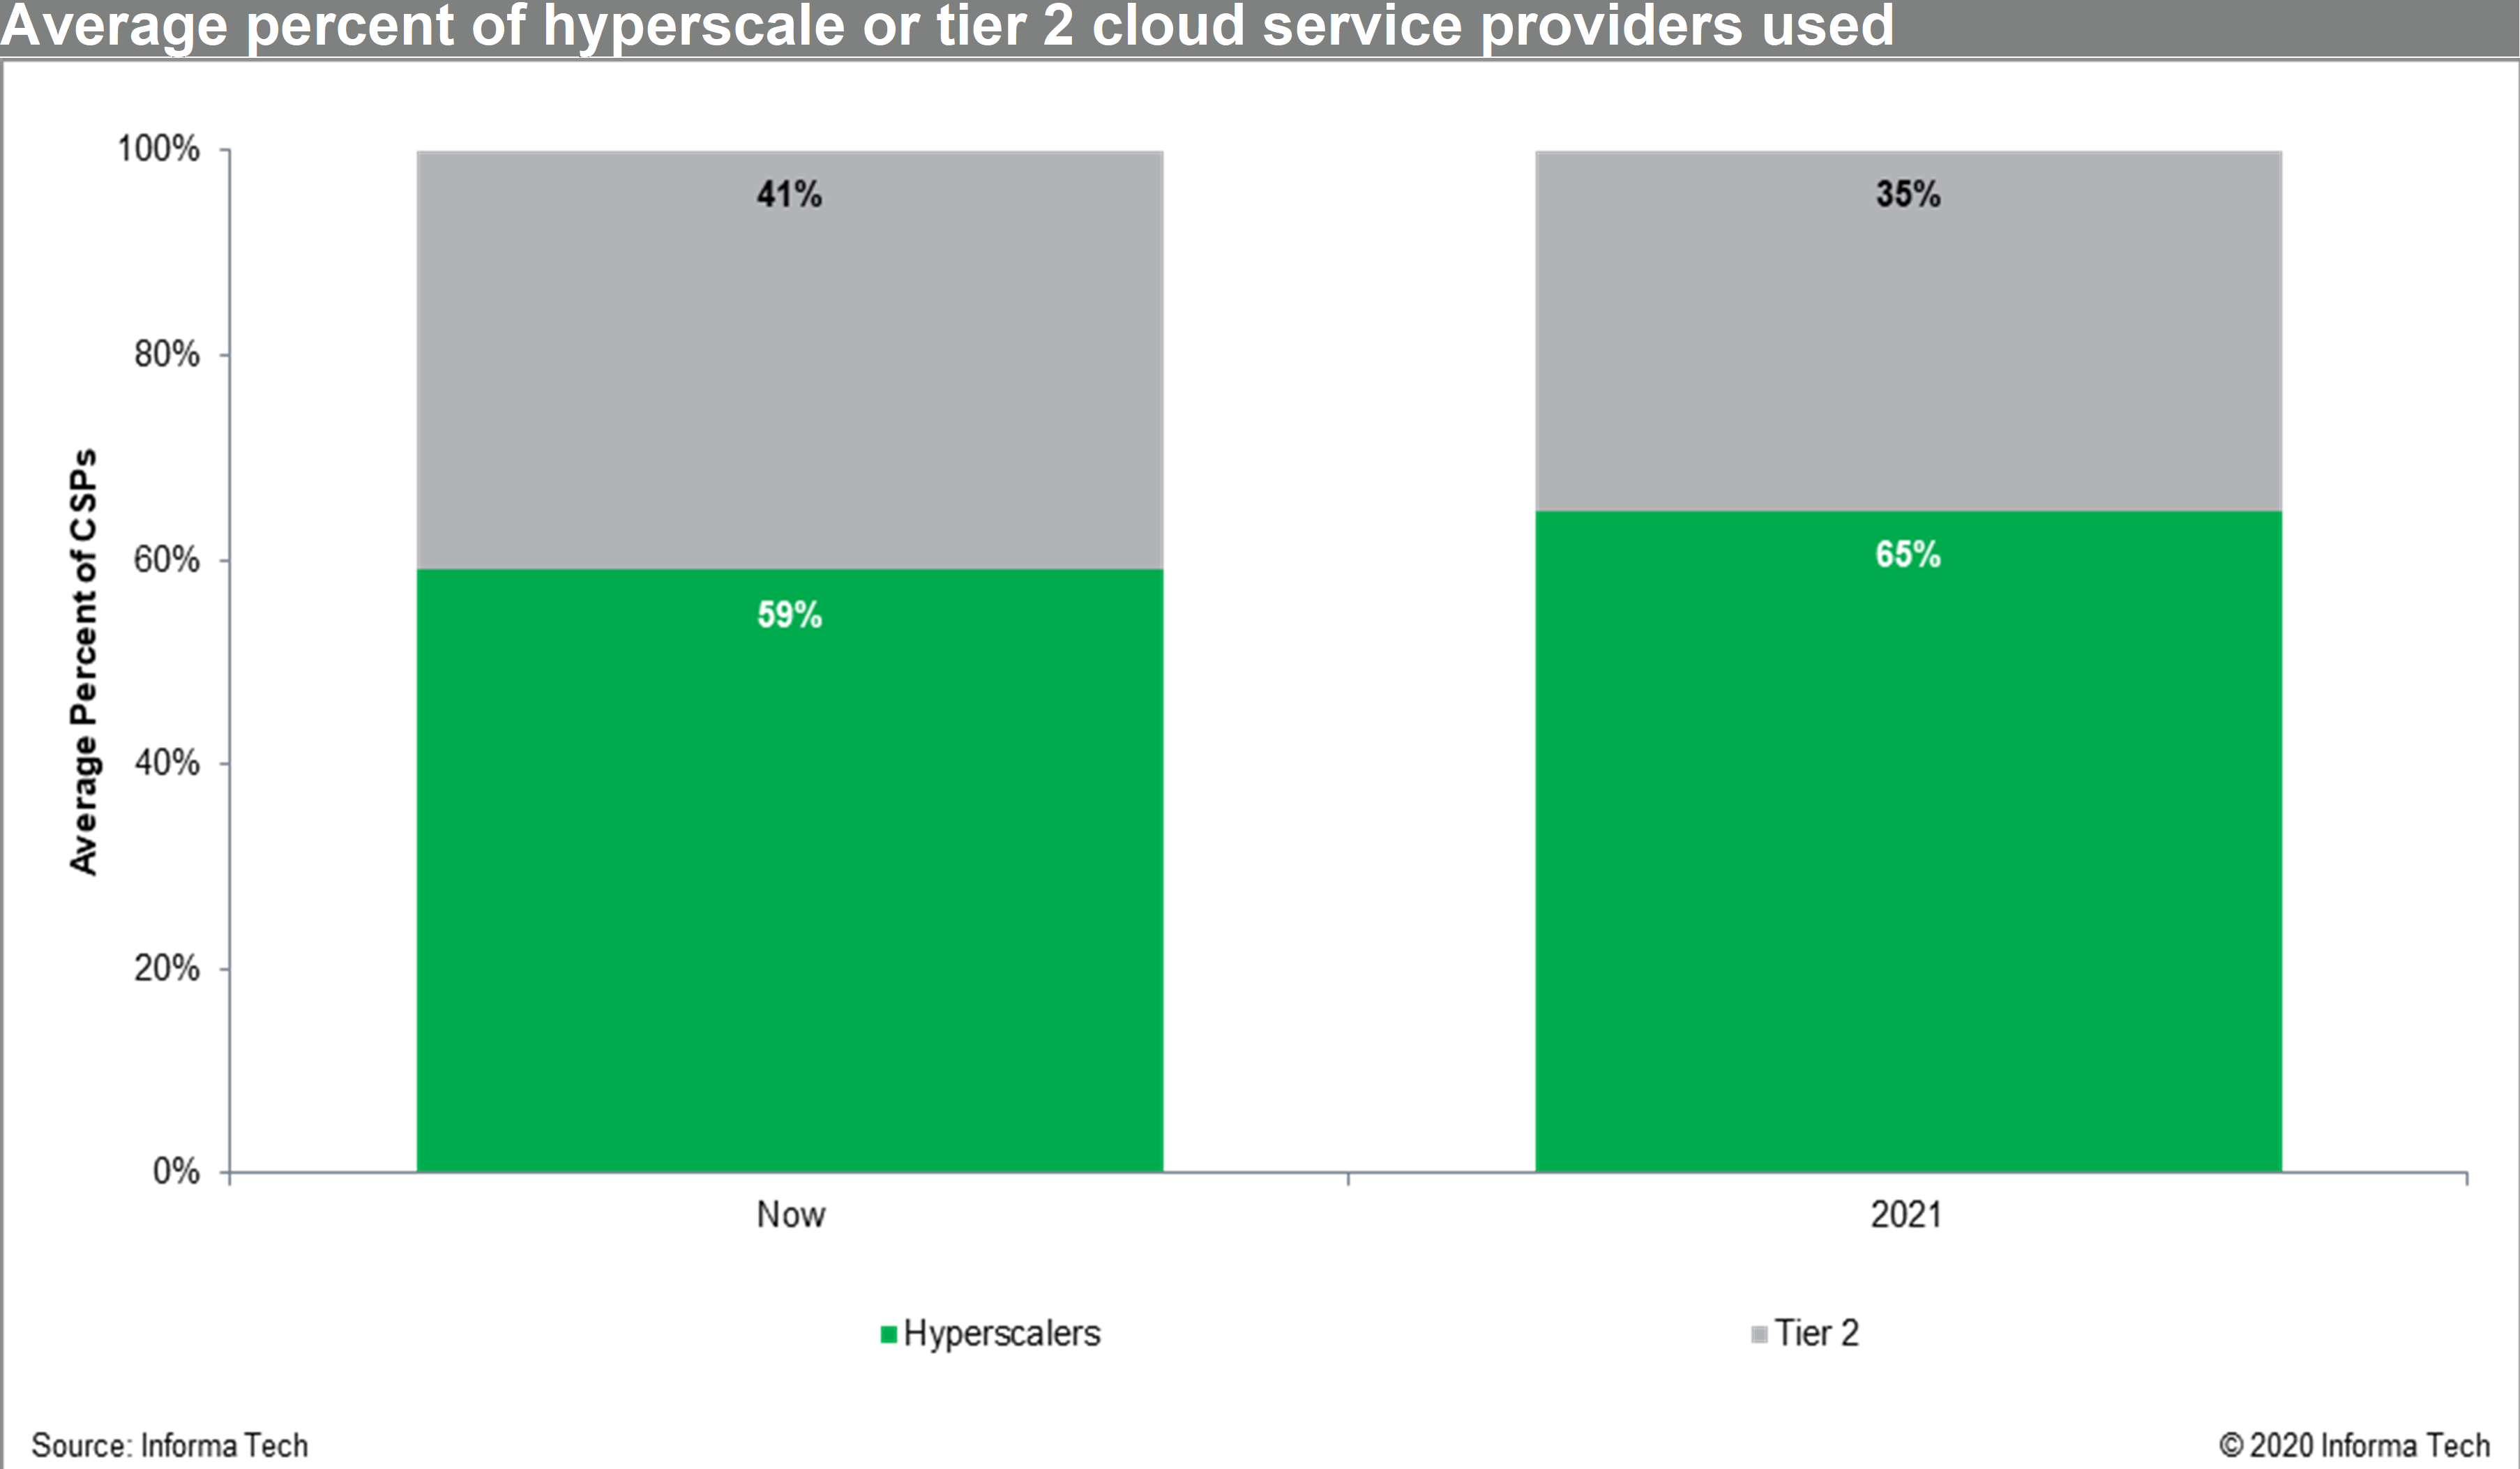 ihs nam enterprise cloud use chart 1.png